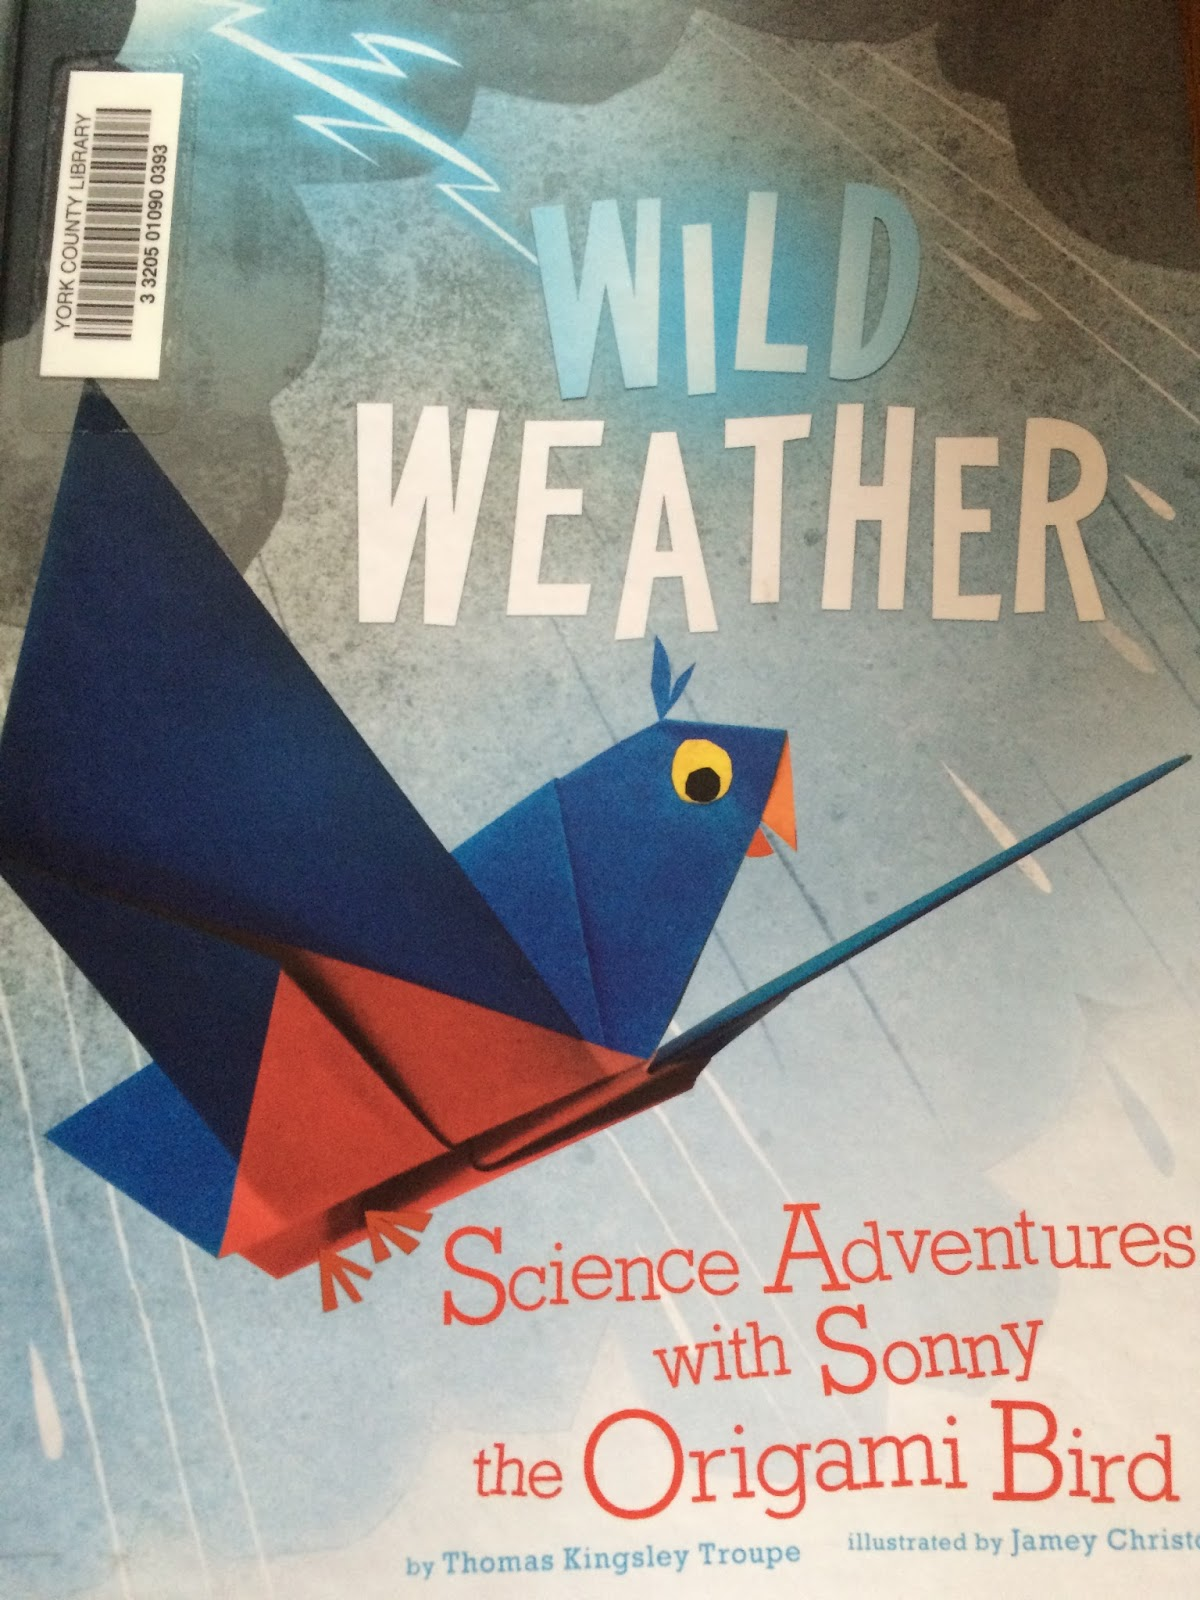 It Was A For Fun Book Wild Weather Science Adventures With Sonny The Origami Bird Little Below Their Grade